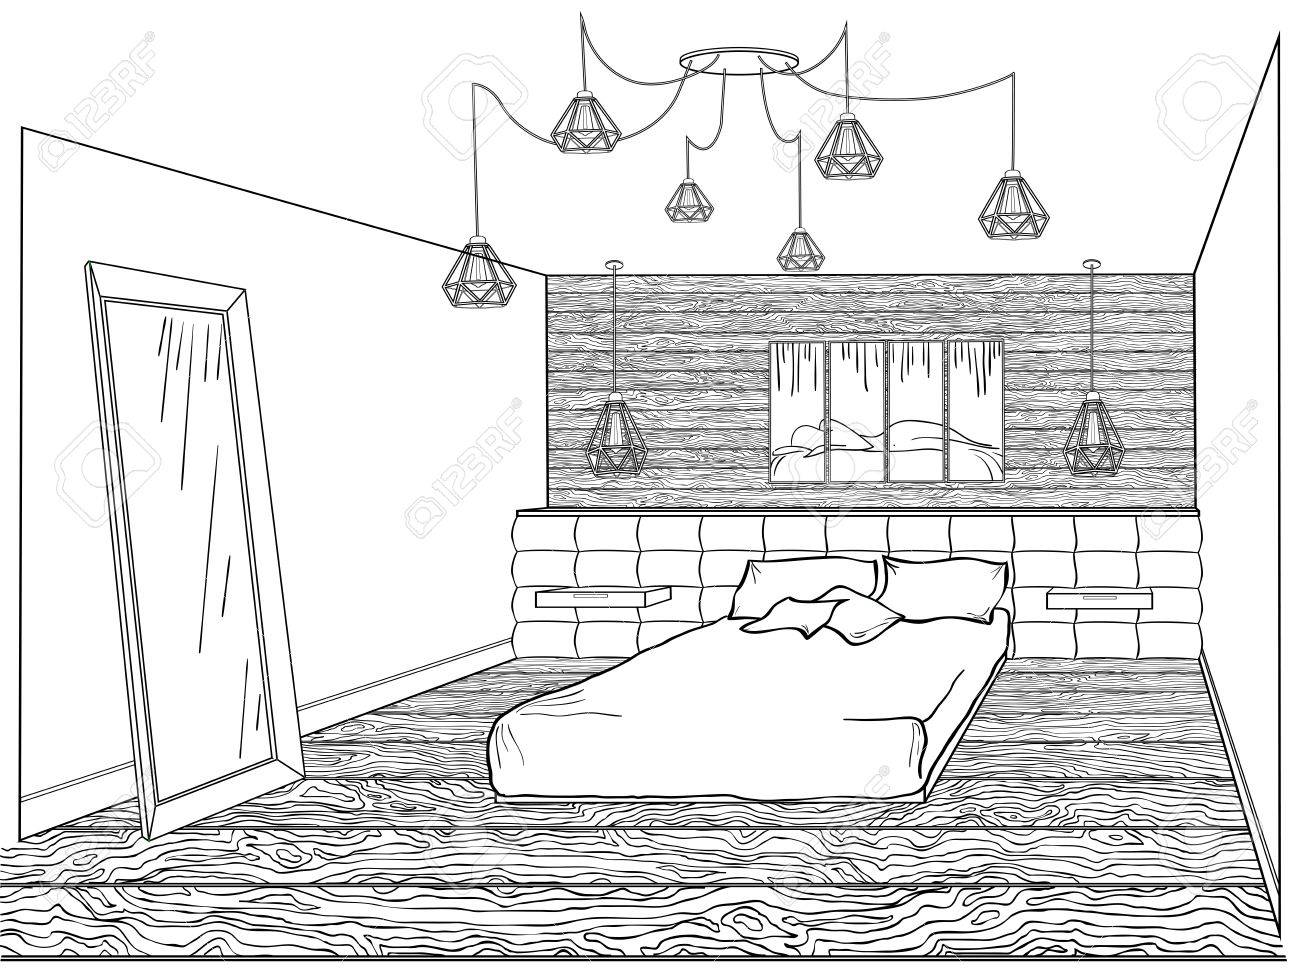 Interior Bedroom Loft With A Bed Soft Quilted, Wooden Wall And Floor, A Lamp